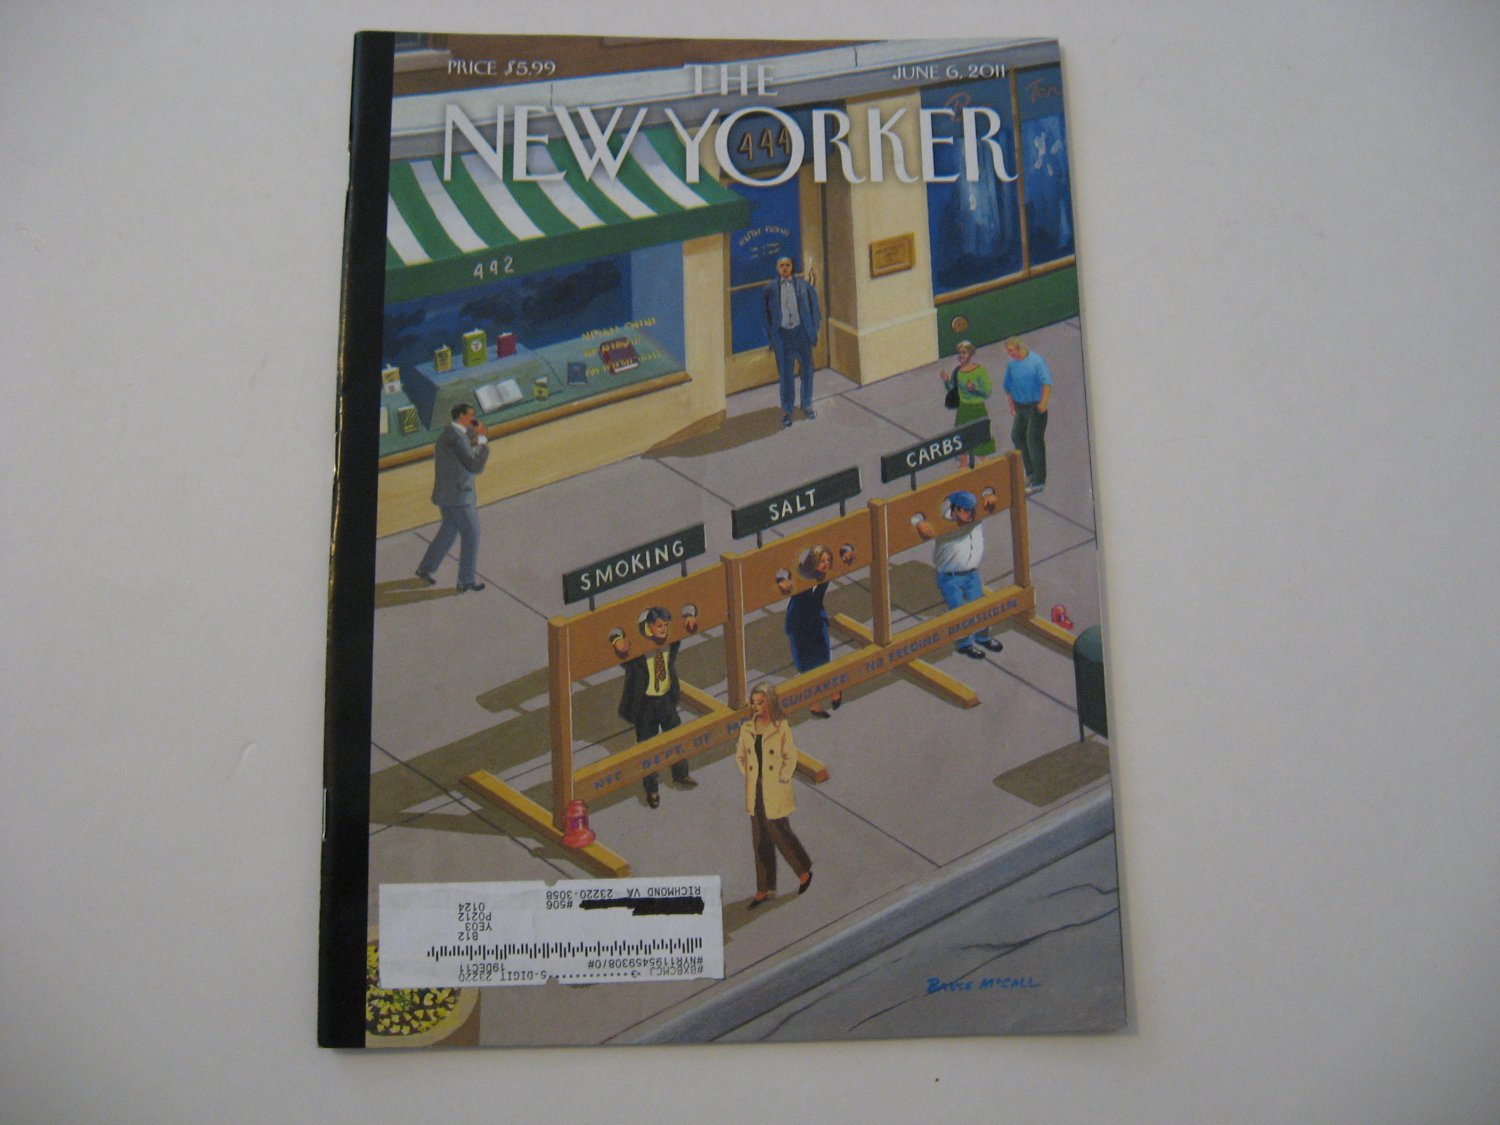 The New Yorker Magazine - Issue Date - June 6, 2011